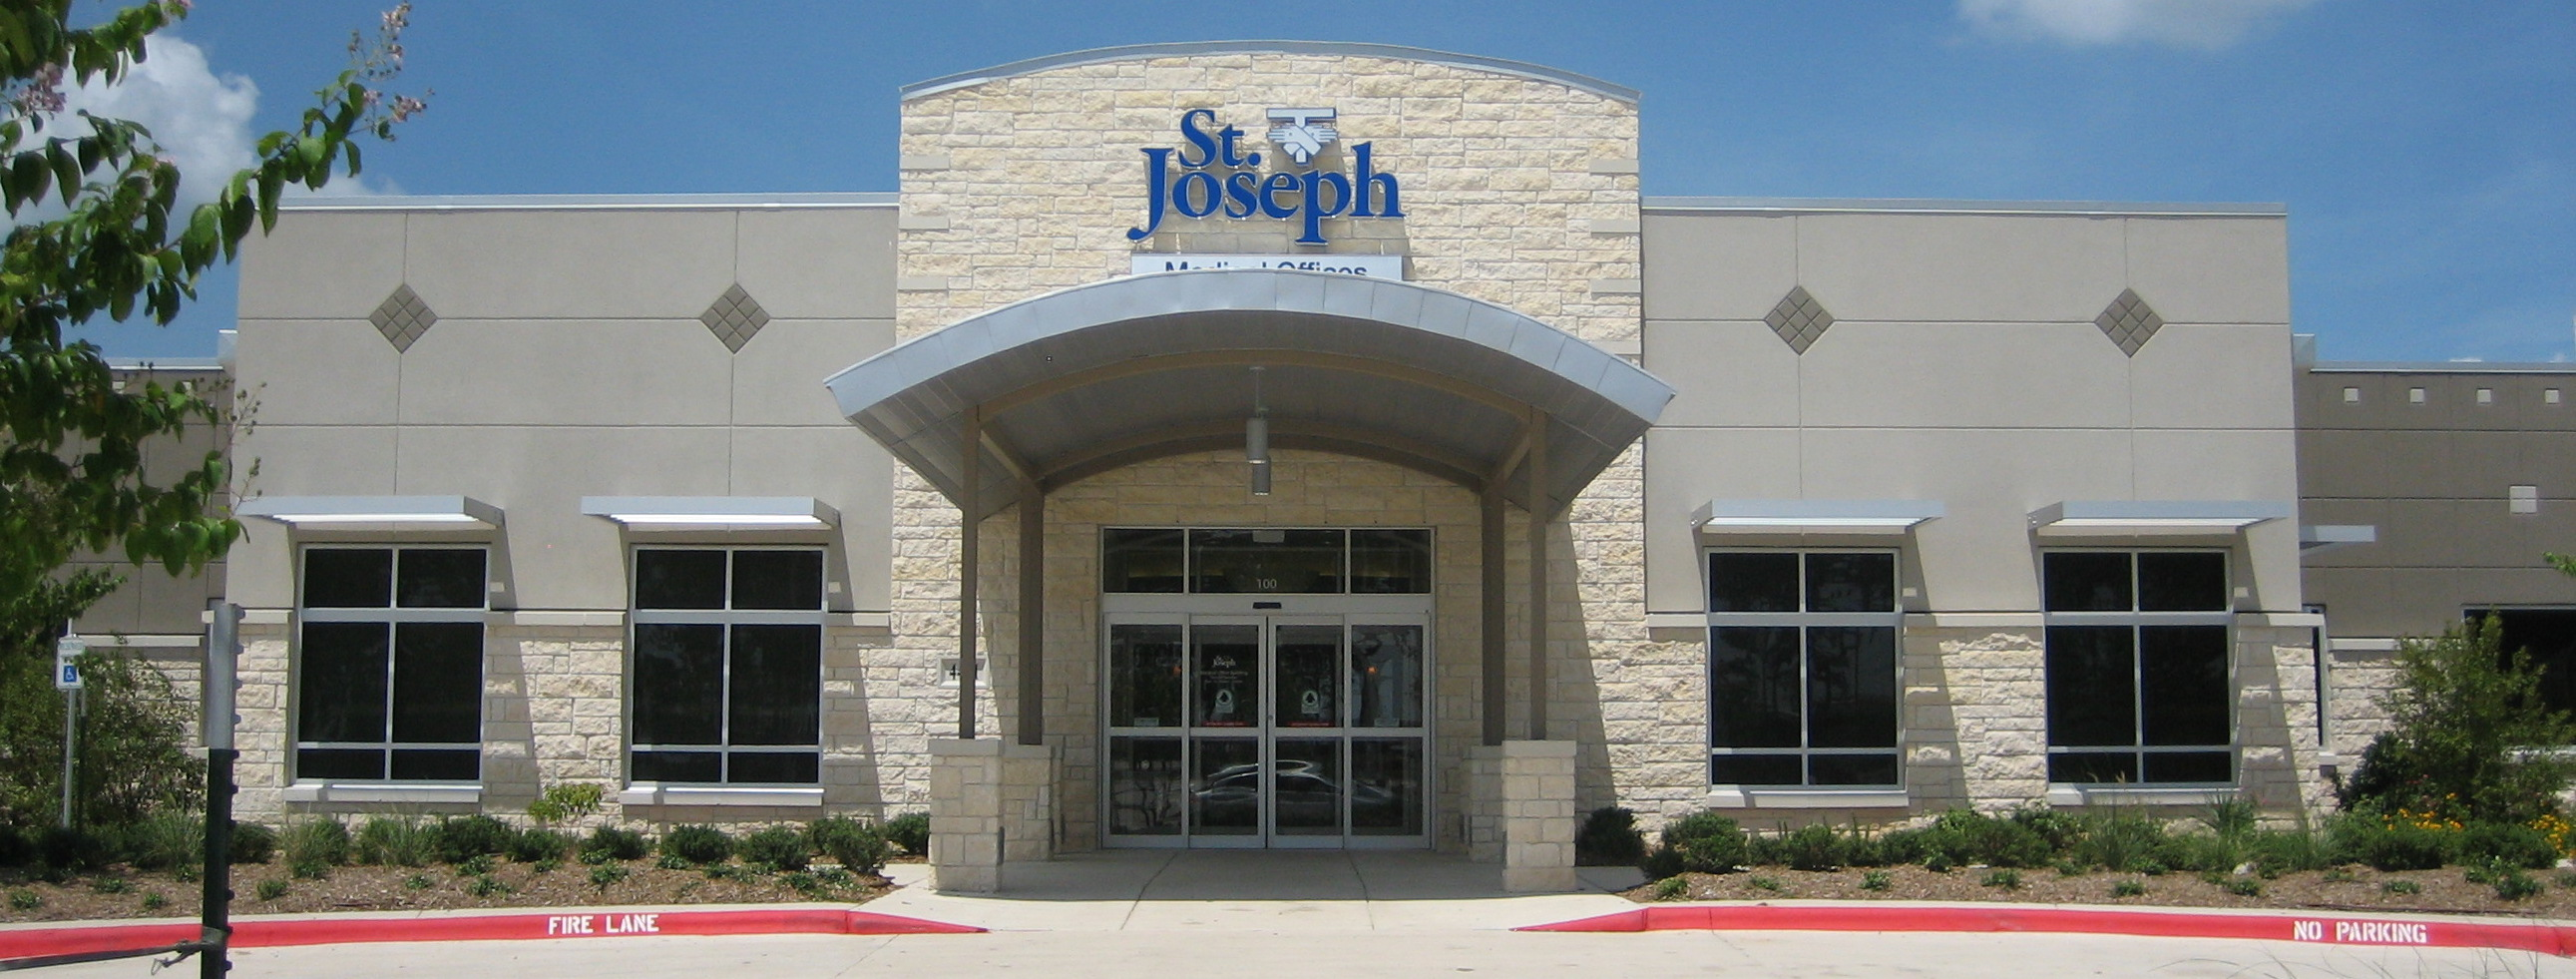 St-Joseph-Medical-Offices-Homepage